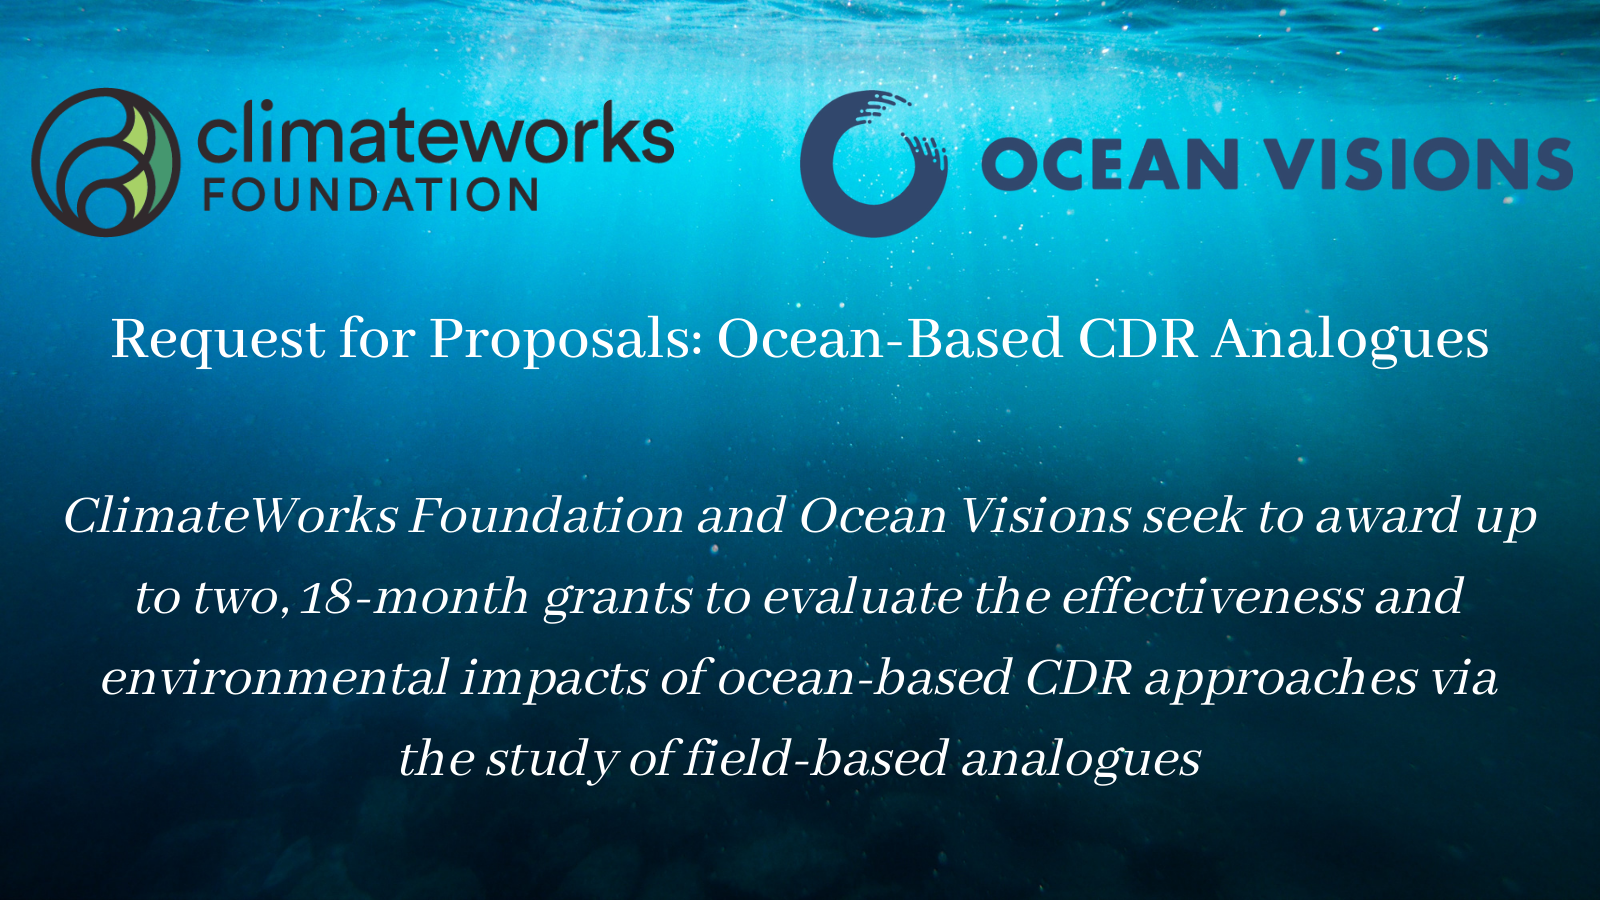 Request for Proposals: Ocean-Based Carbon Dioxide Removal Analogues